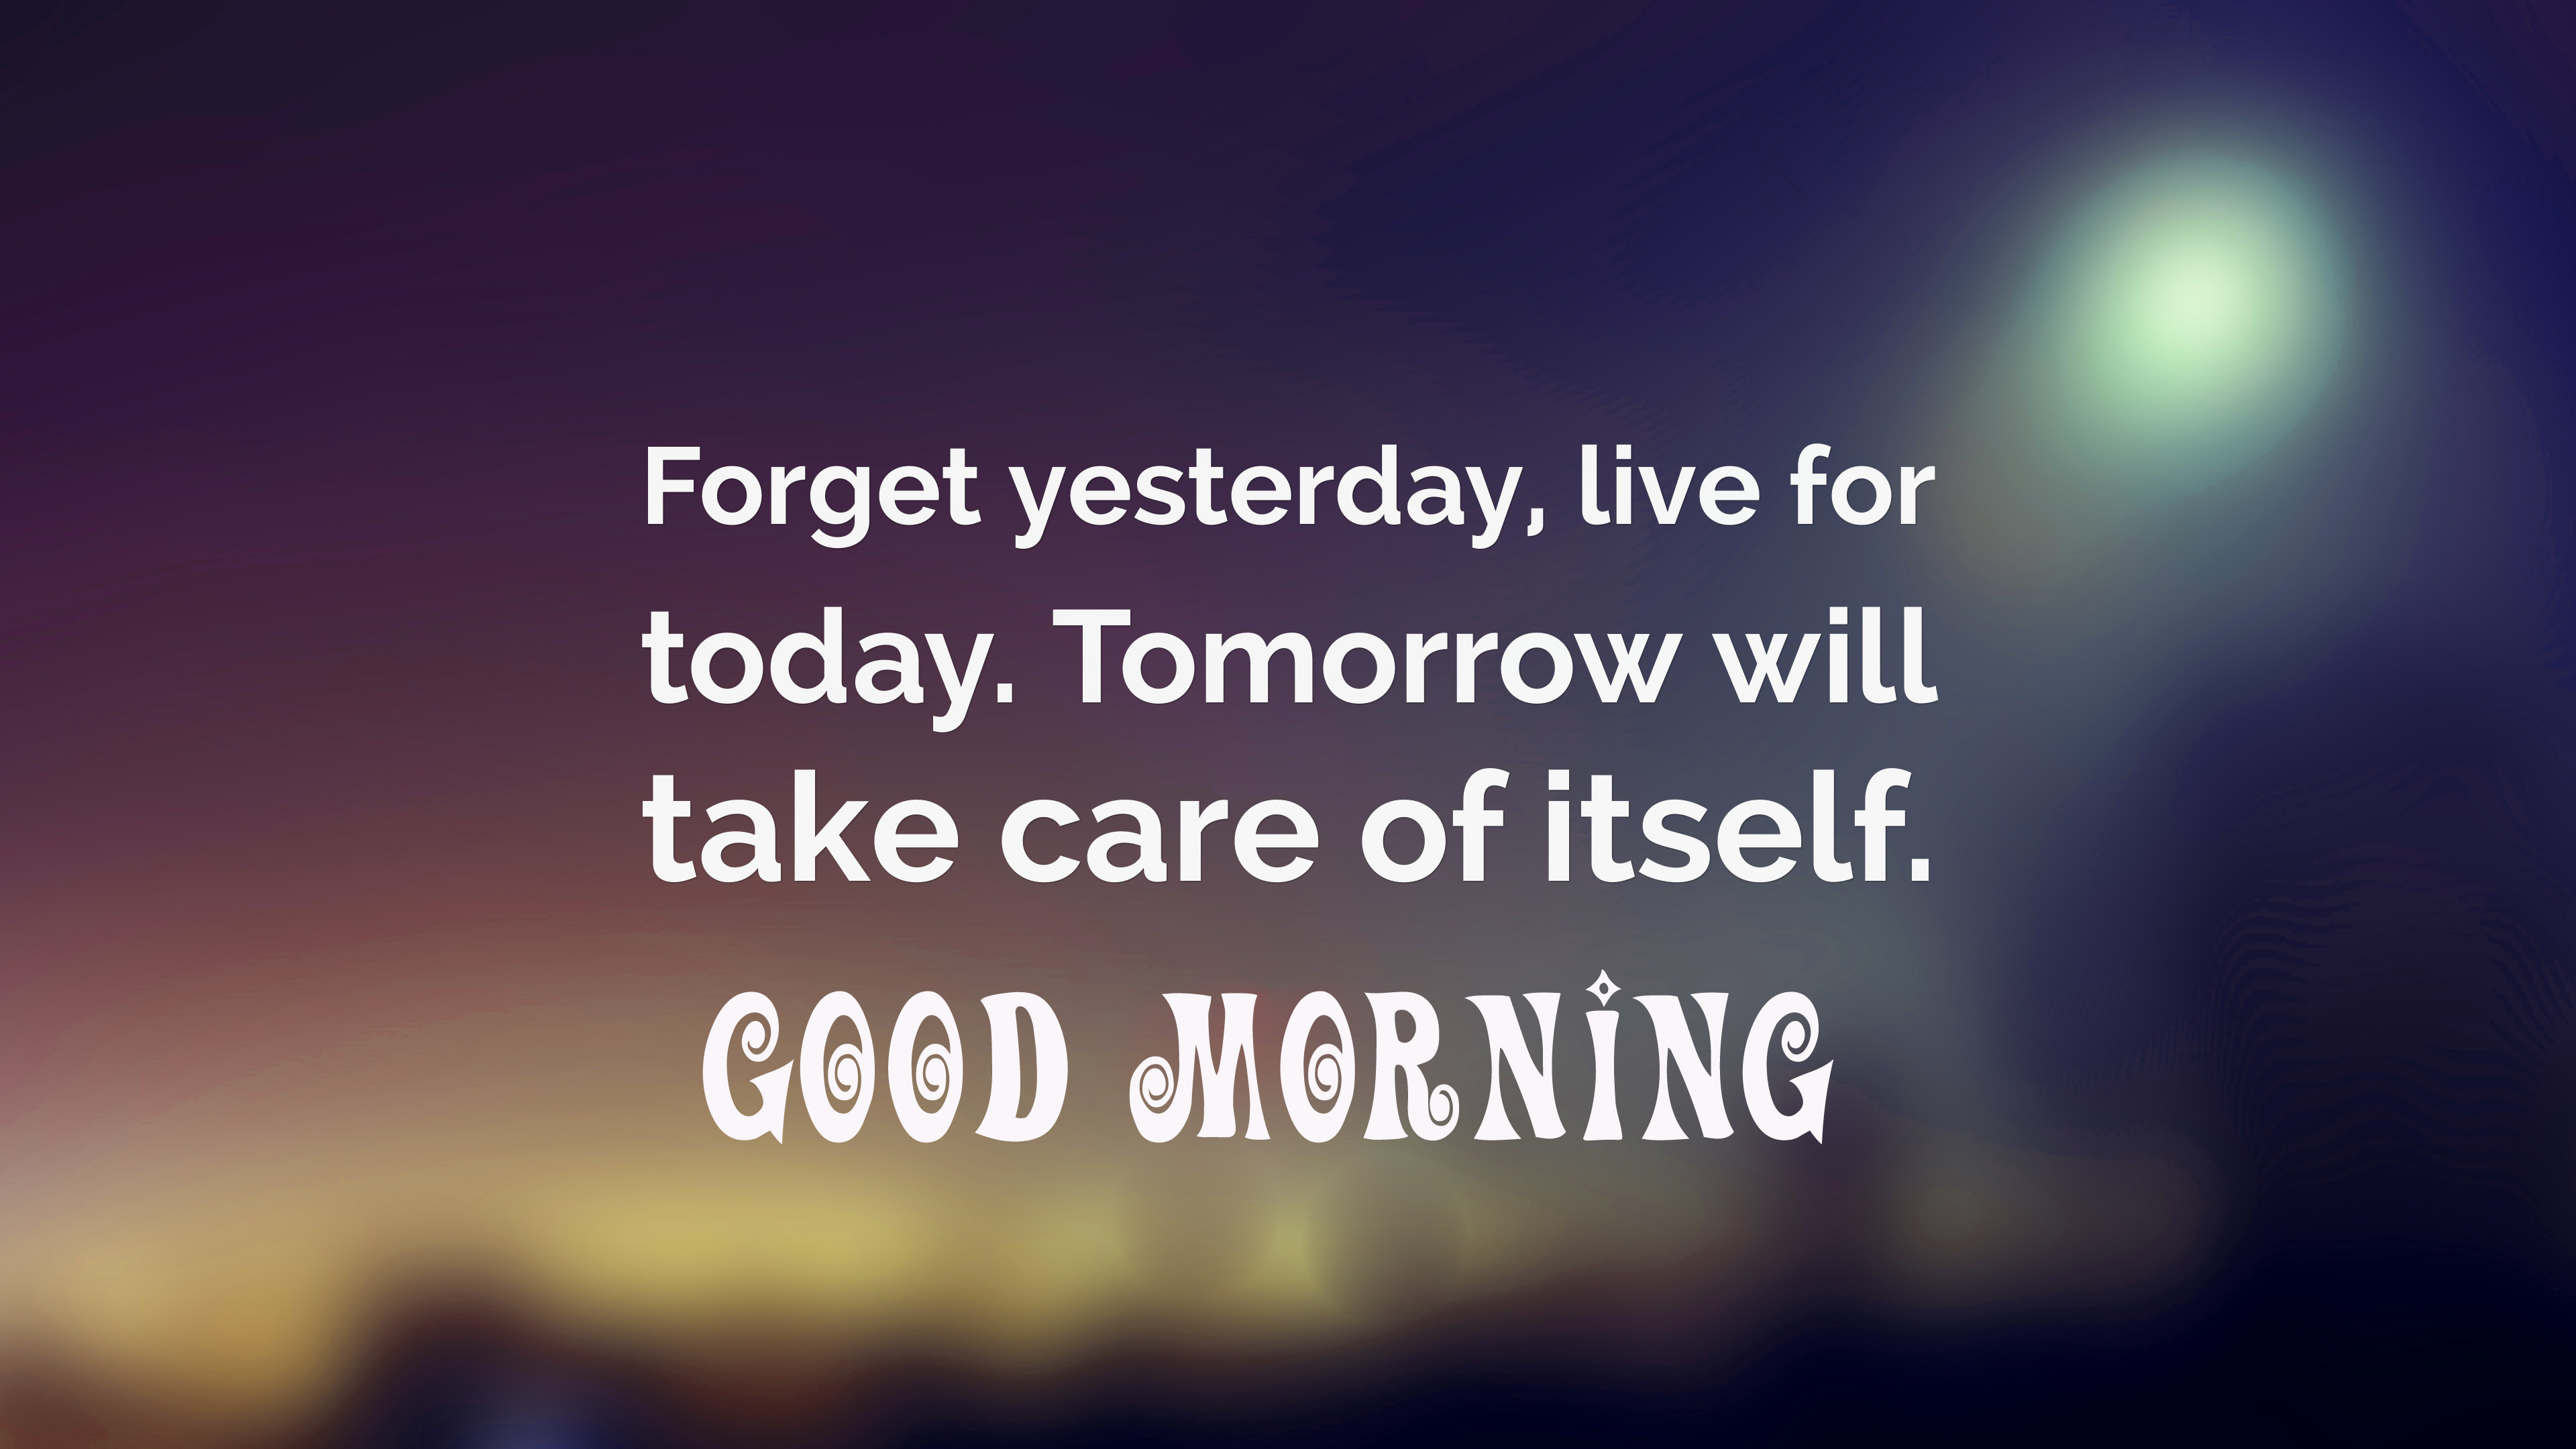 forget yesterday good morning Images Wallpaper Pics Download